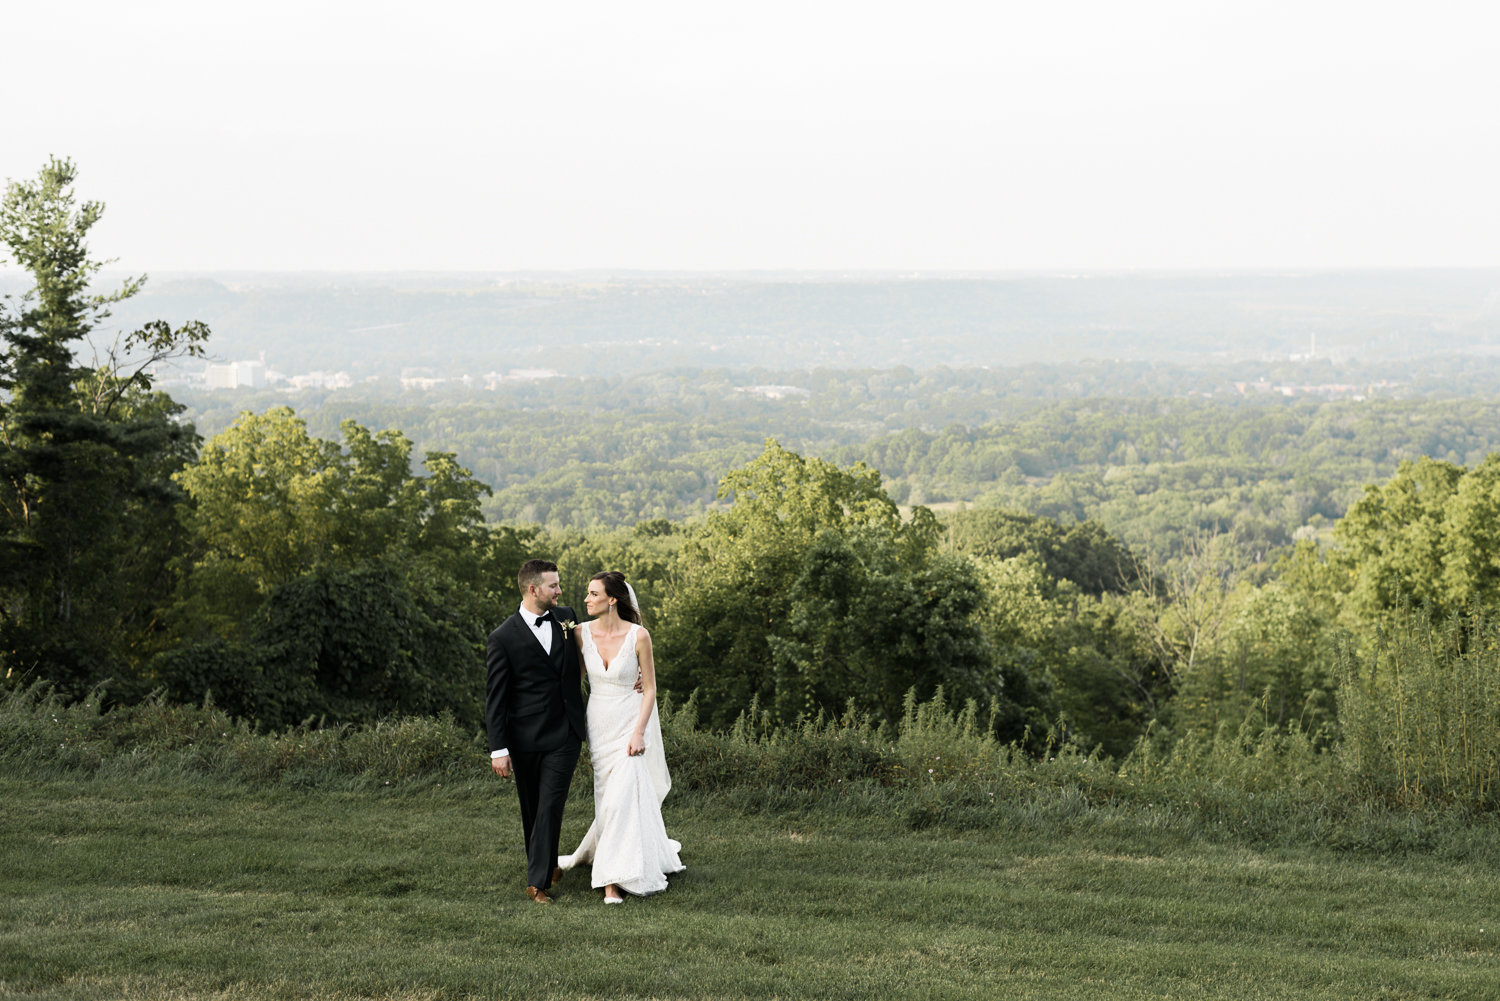 Hamilton Mountain wedding photo